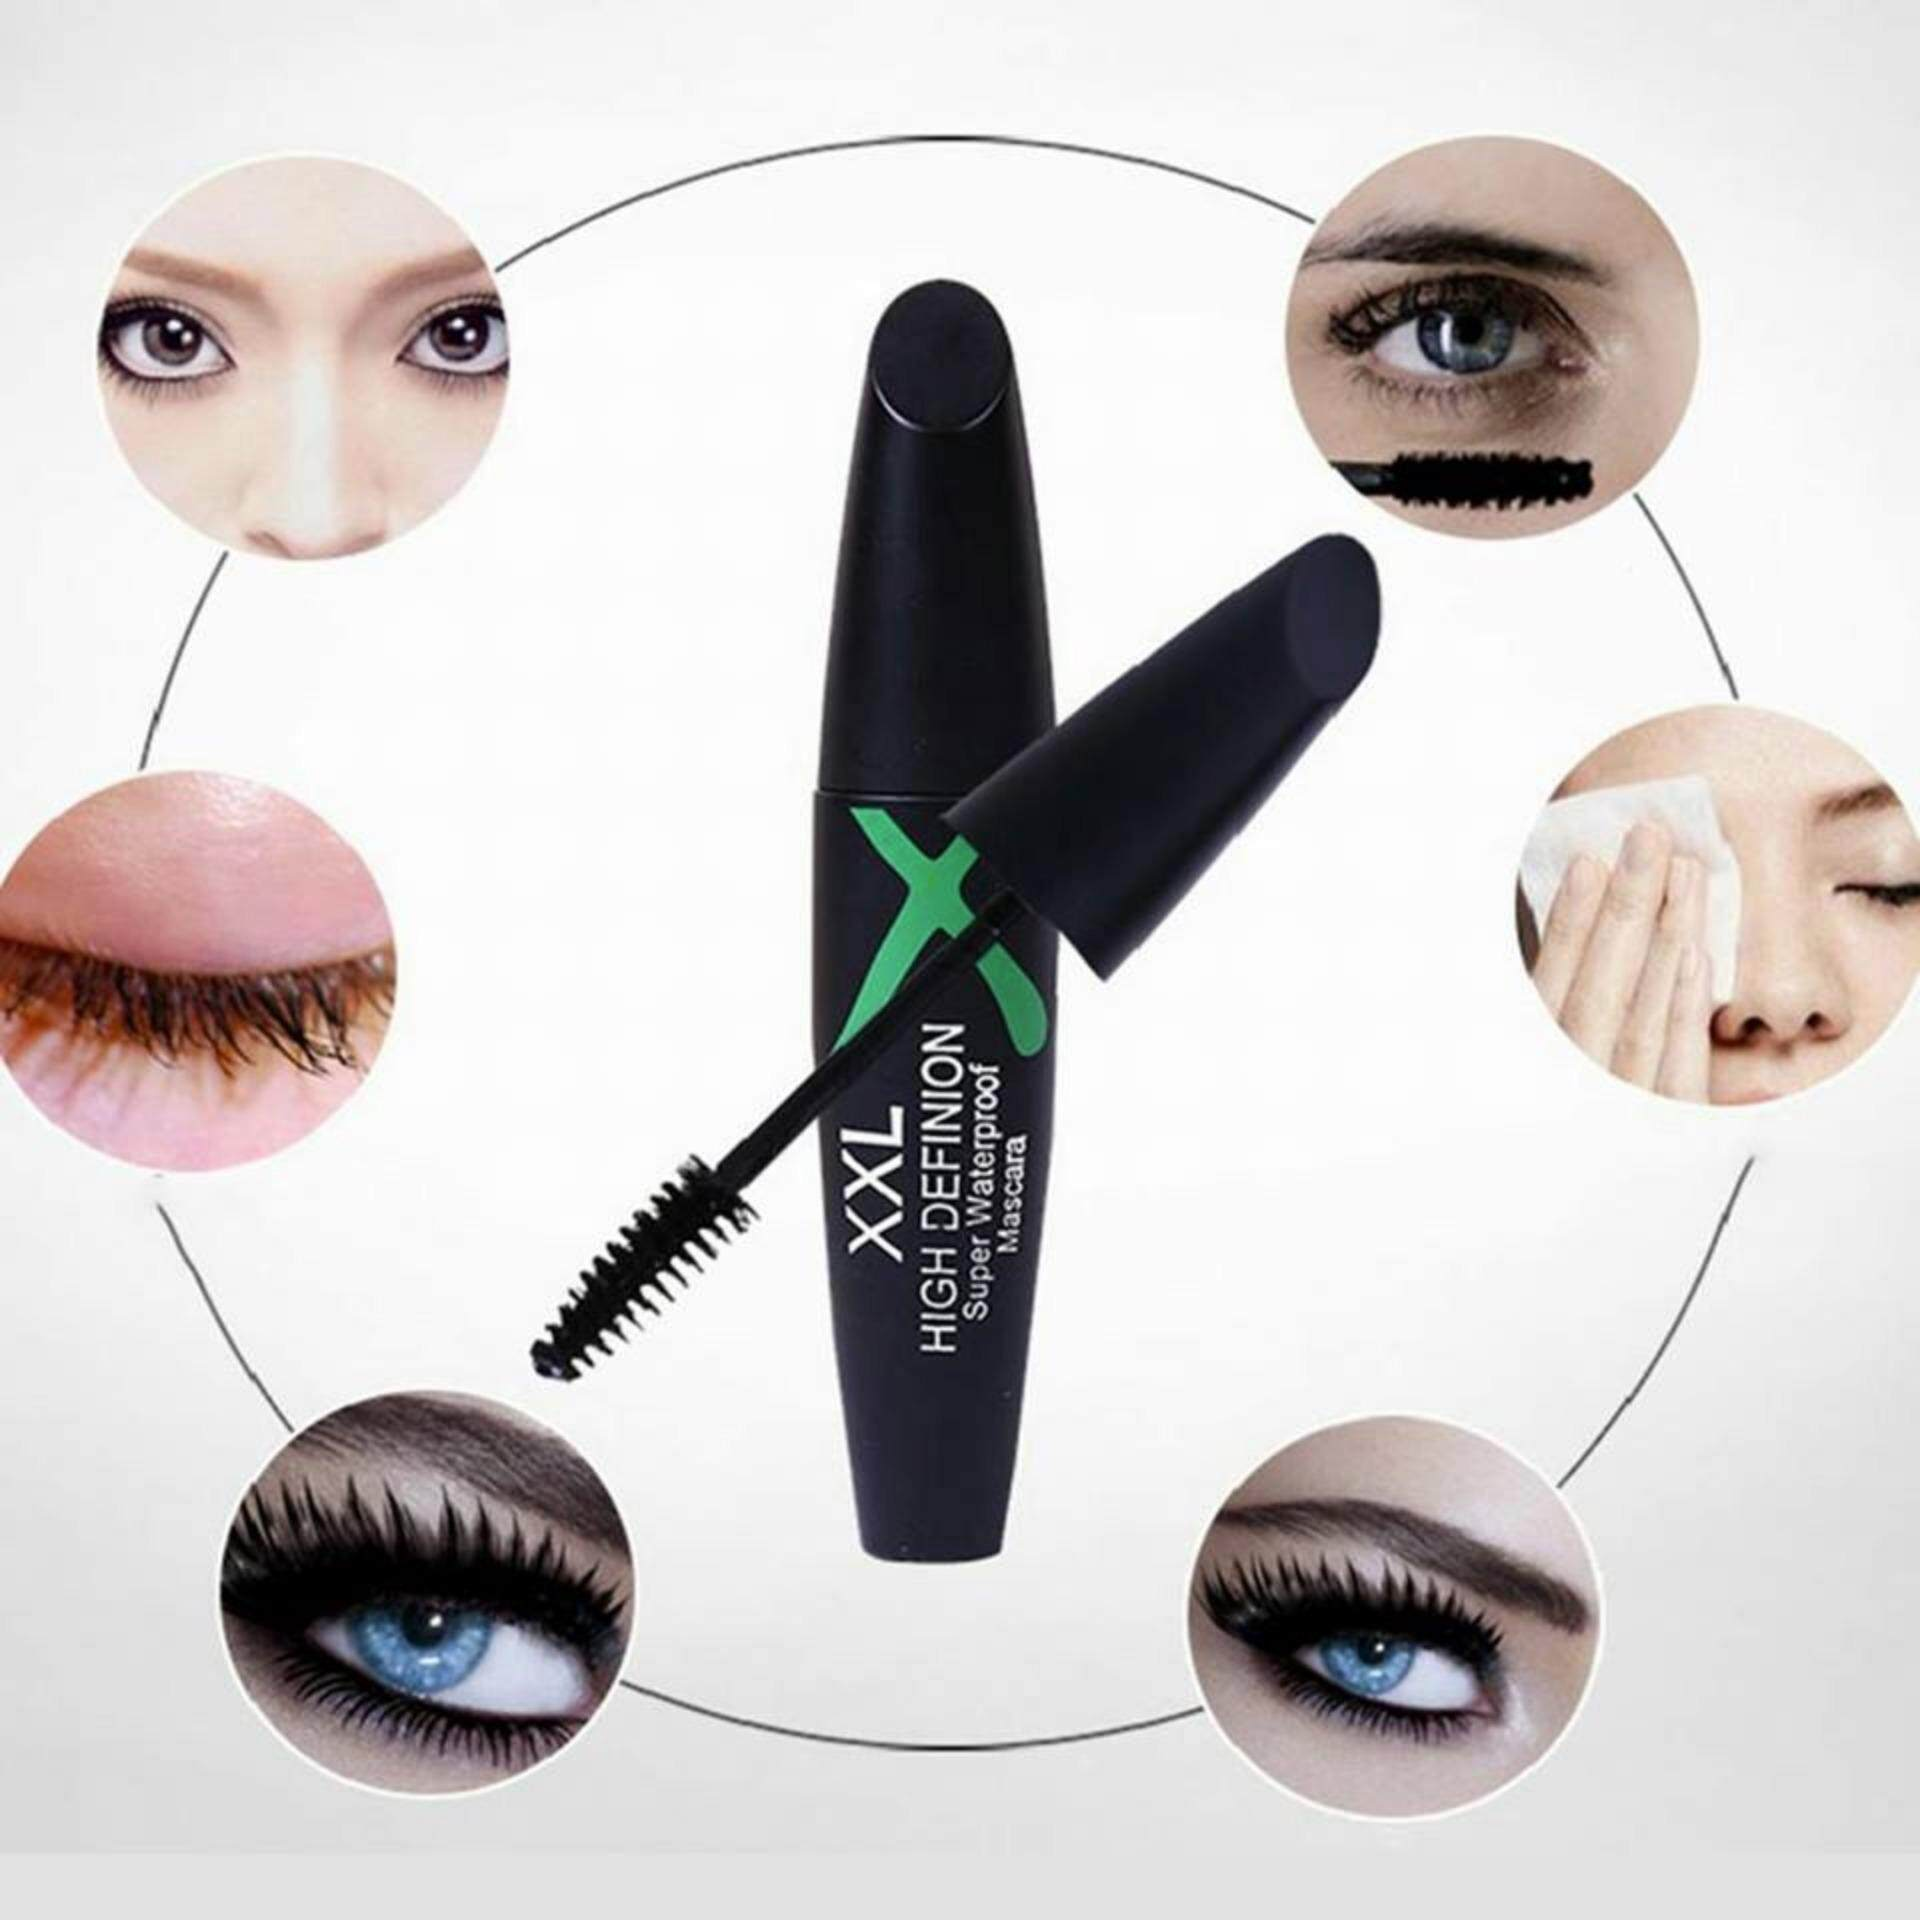 Waterproof Black Mascara Eyelash Extension Curling Length Beauty